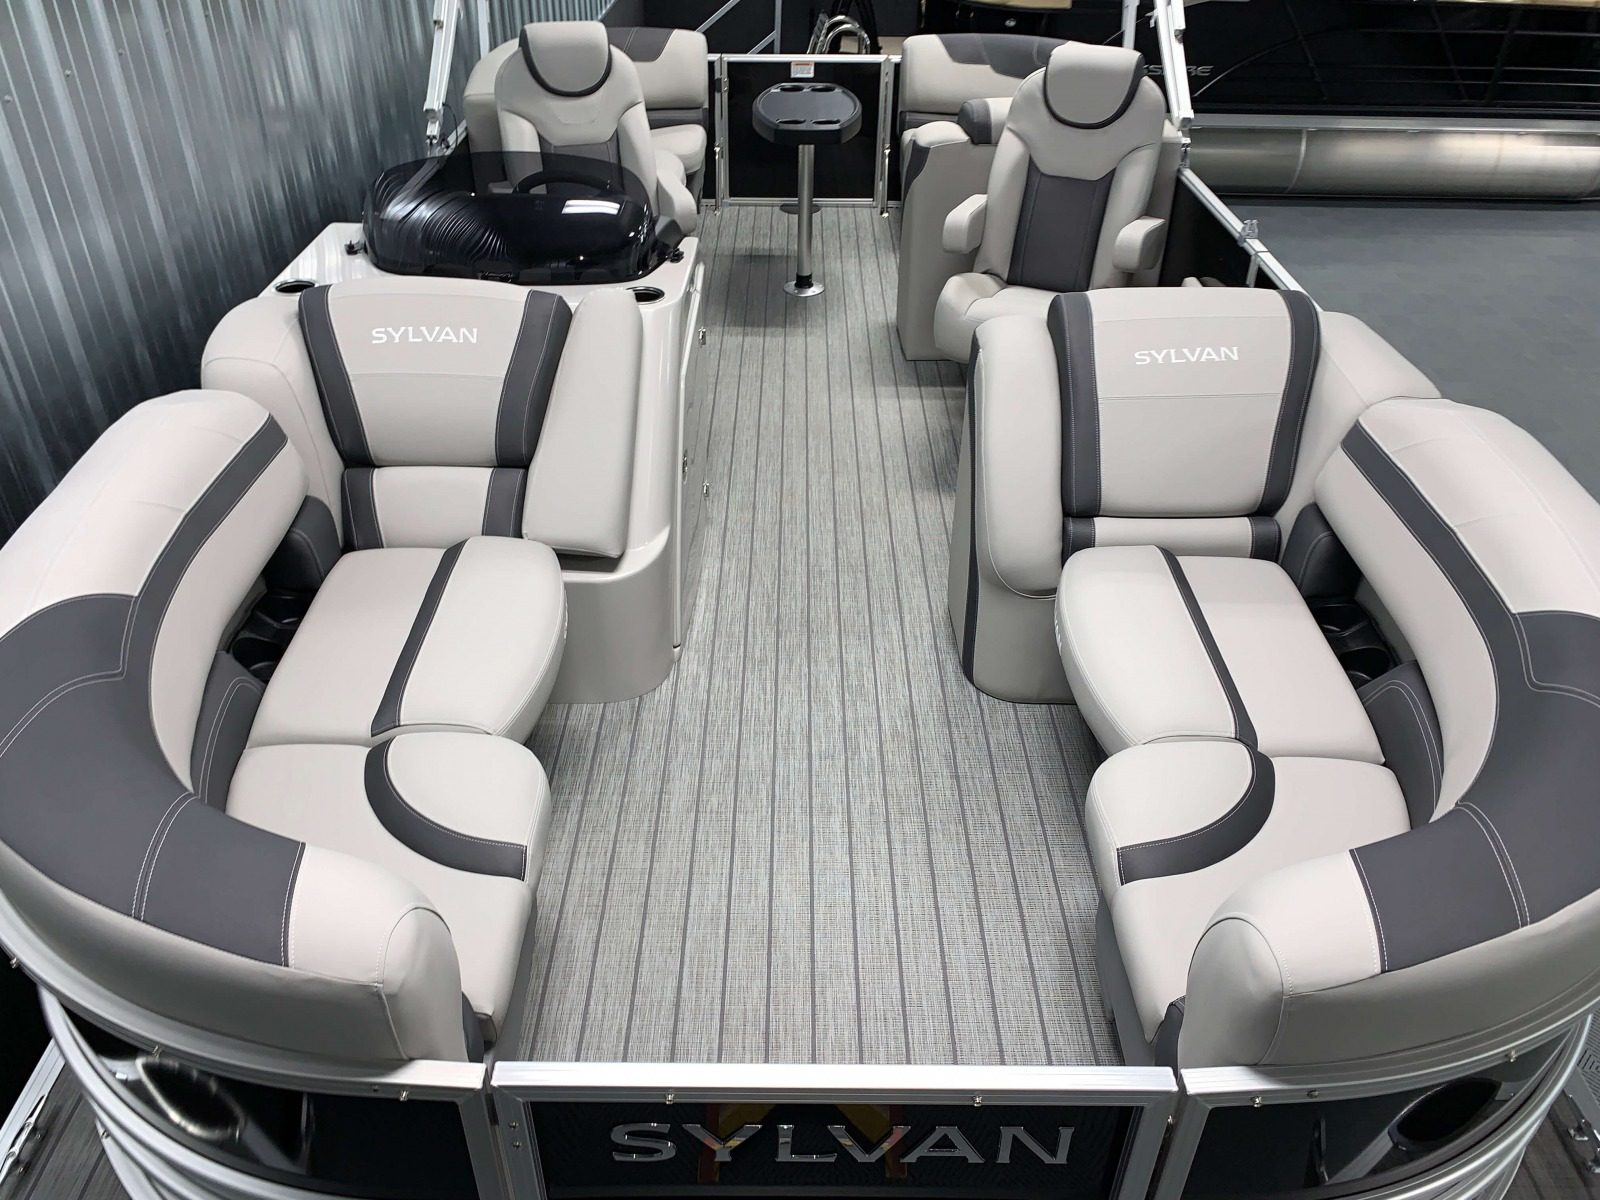 Interior Layout of the 2021 Sylvan L1 LZ Pontoon Boat